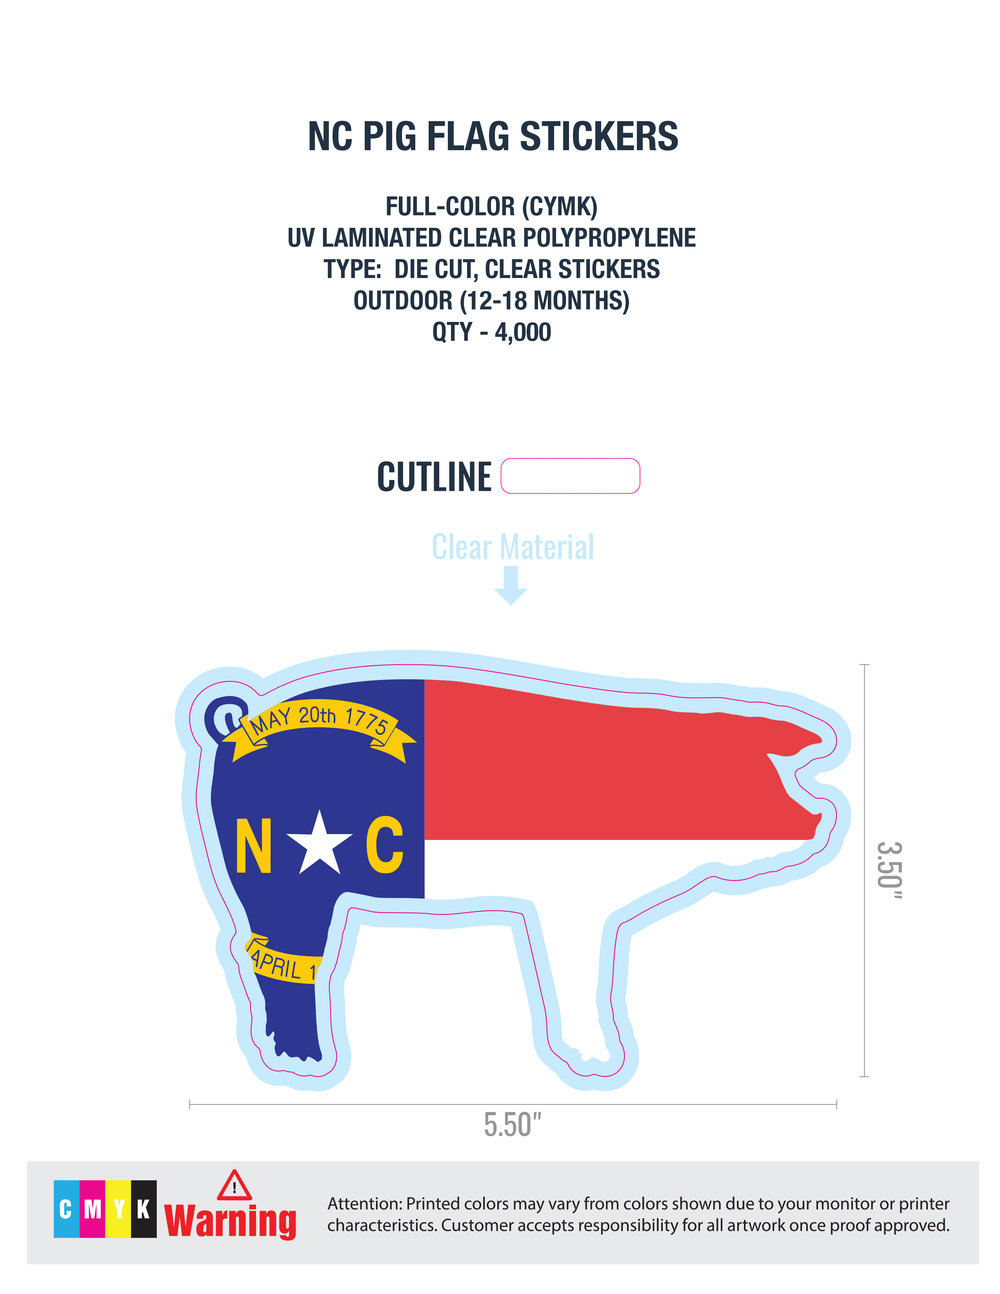 NC Pig Flag Sticker - Please review the proof for design and content.